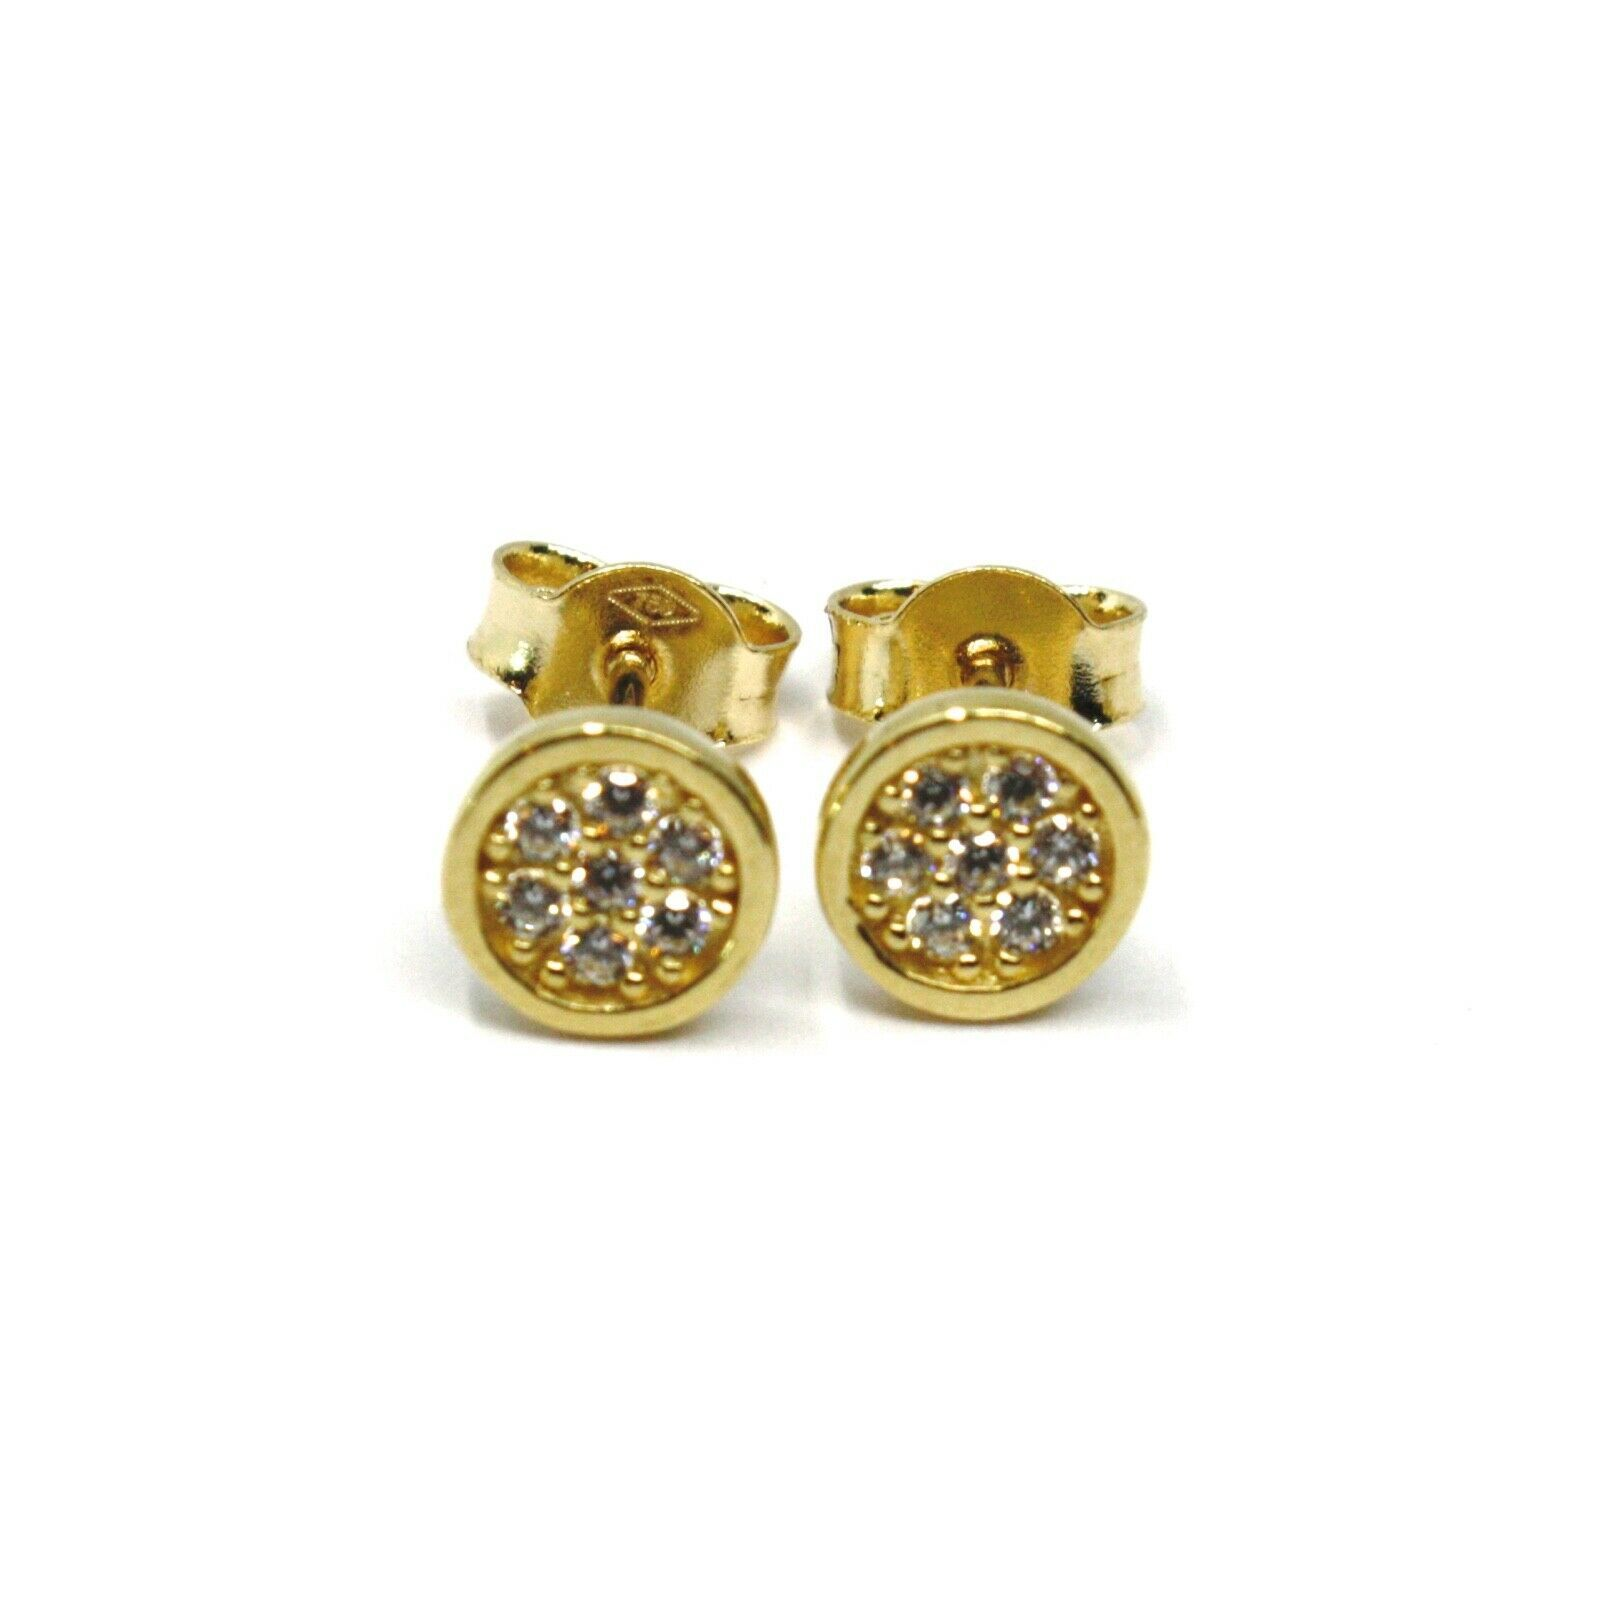 18K YELLOW GOLD MINI BUTTON EARRINGS WITH CUBIC ZIRCONIA, DISC FLOWER, 6 MM